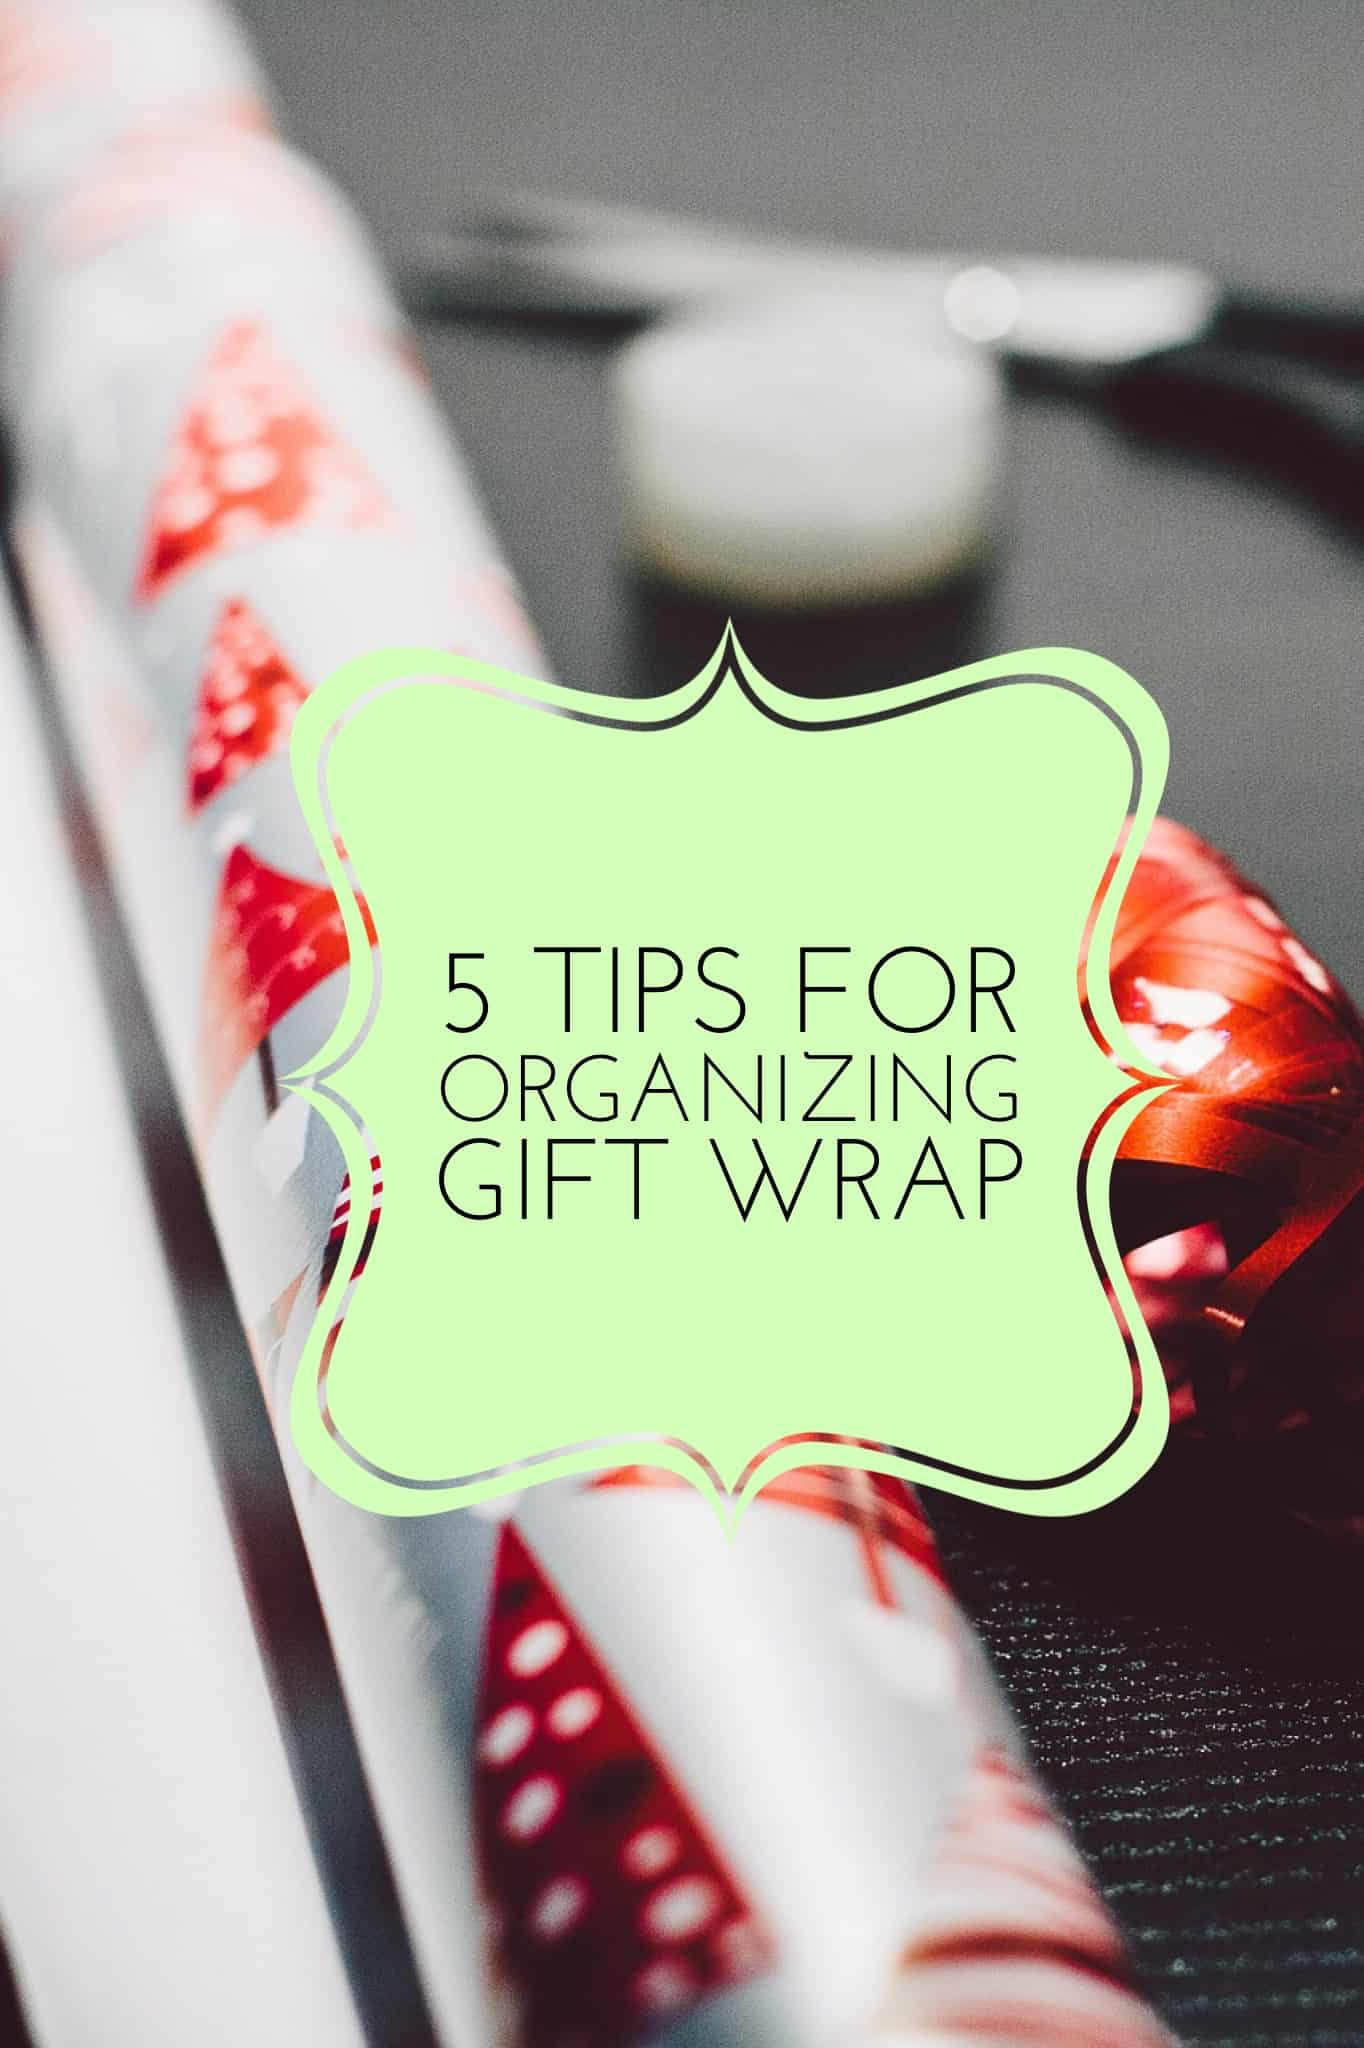 5 Tips for Organizing Gift Wrap Title